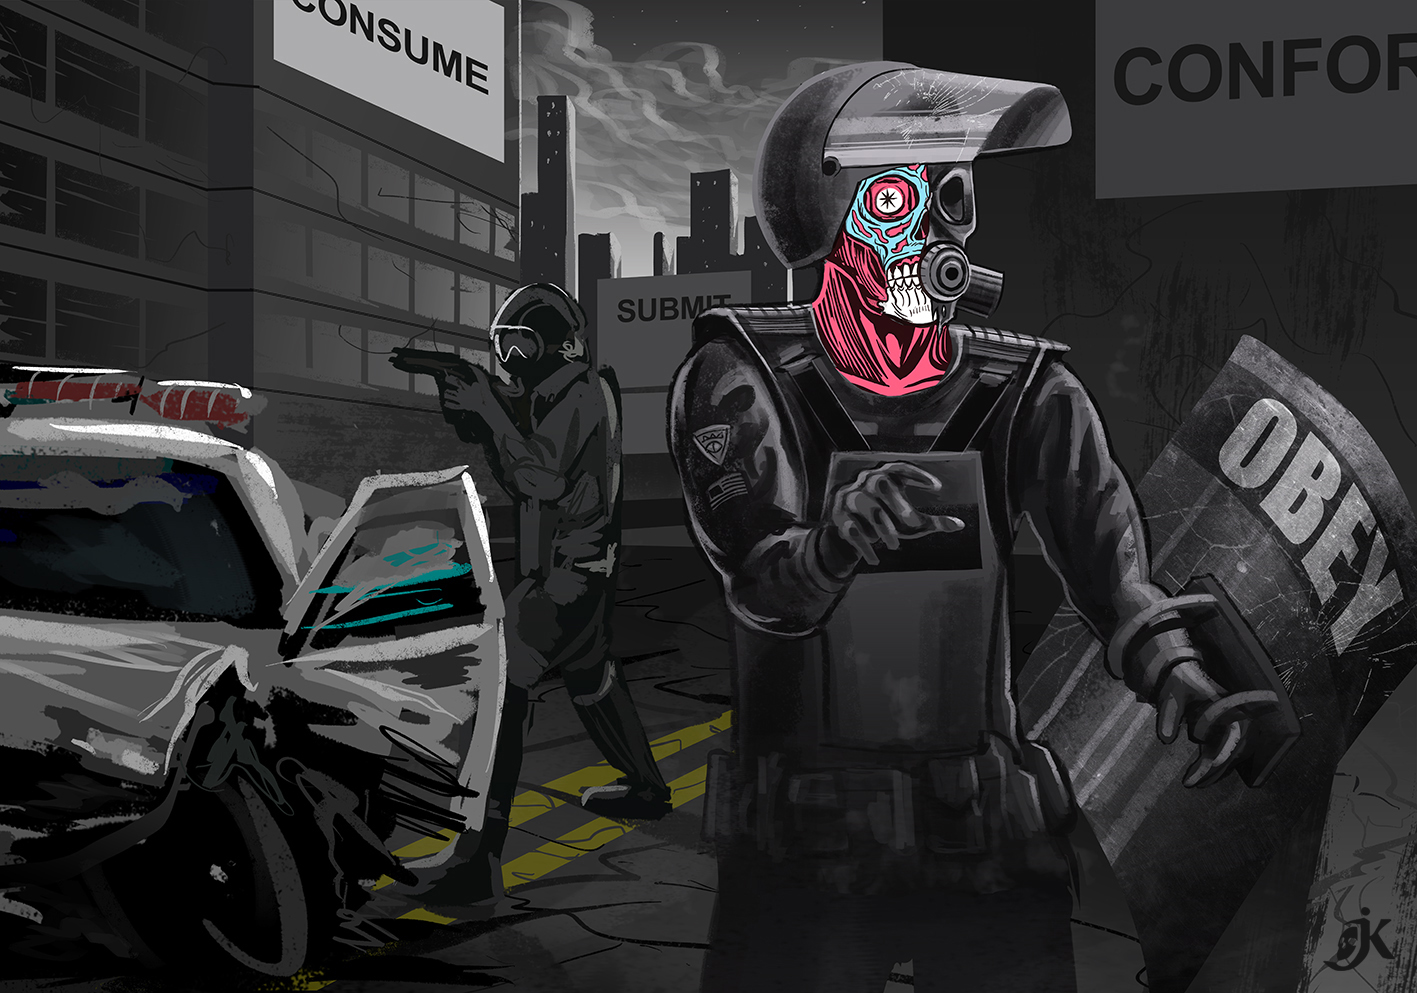 consume-submit-obey-art